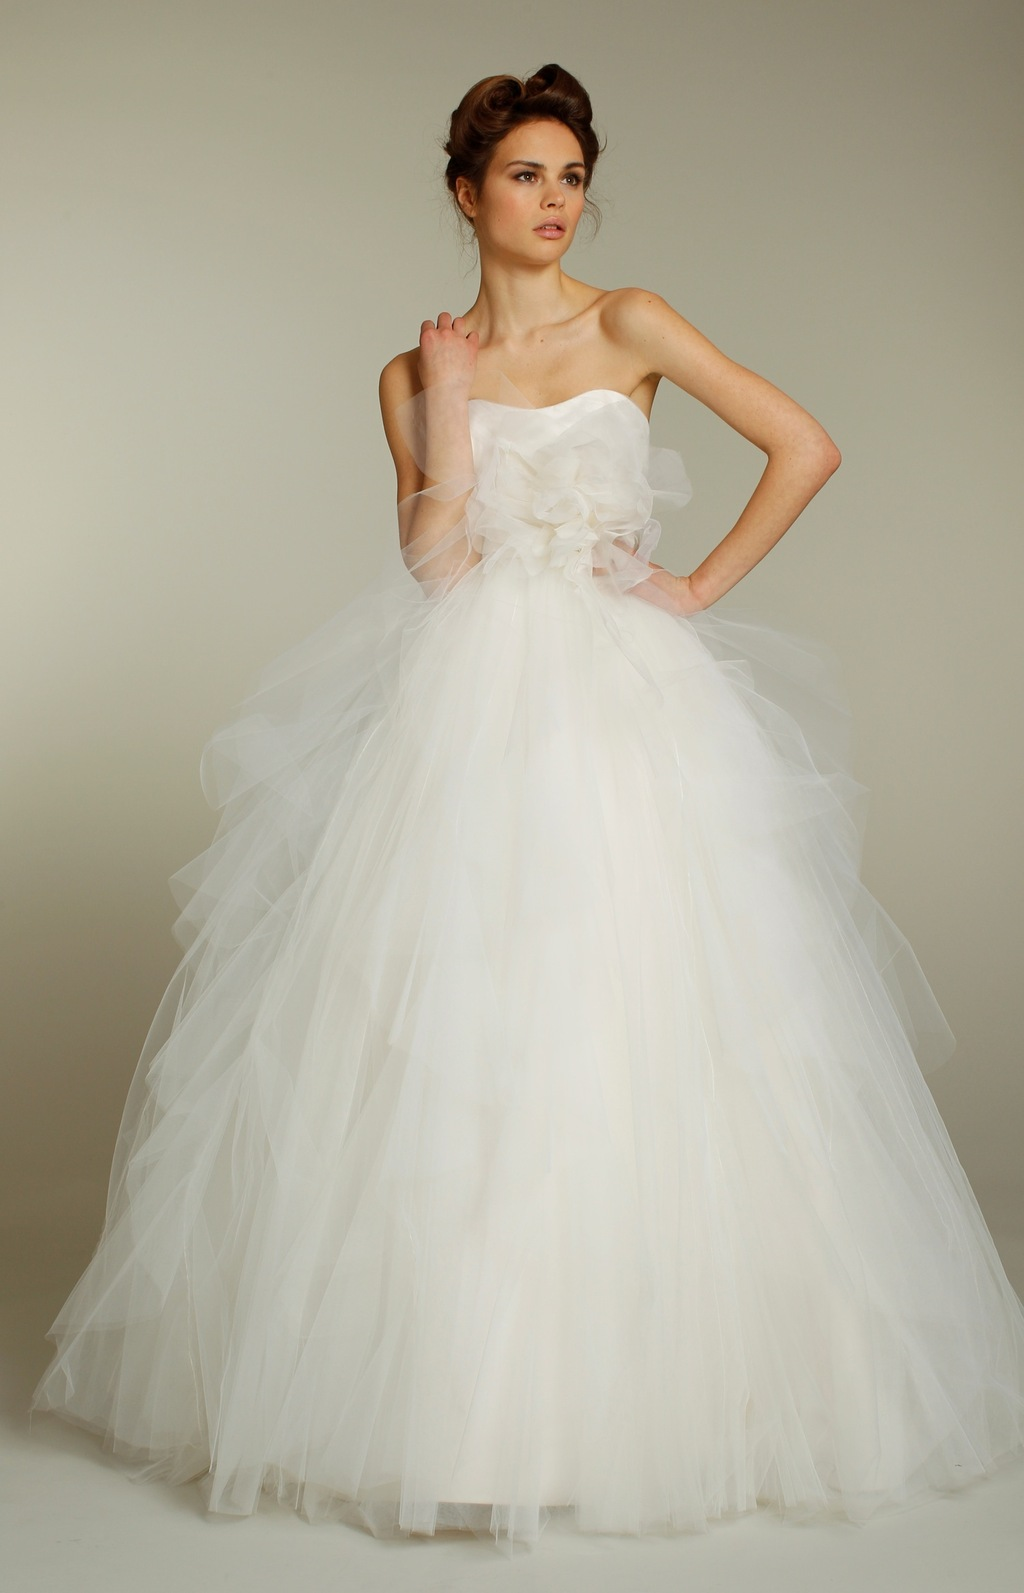 1156-blush-wedding-dress-2011-bridal-gowns-tulle-ballgown-strapless-sweetheart-front.full